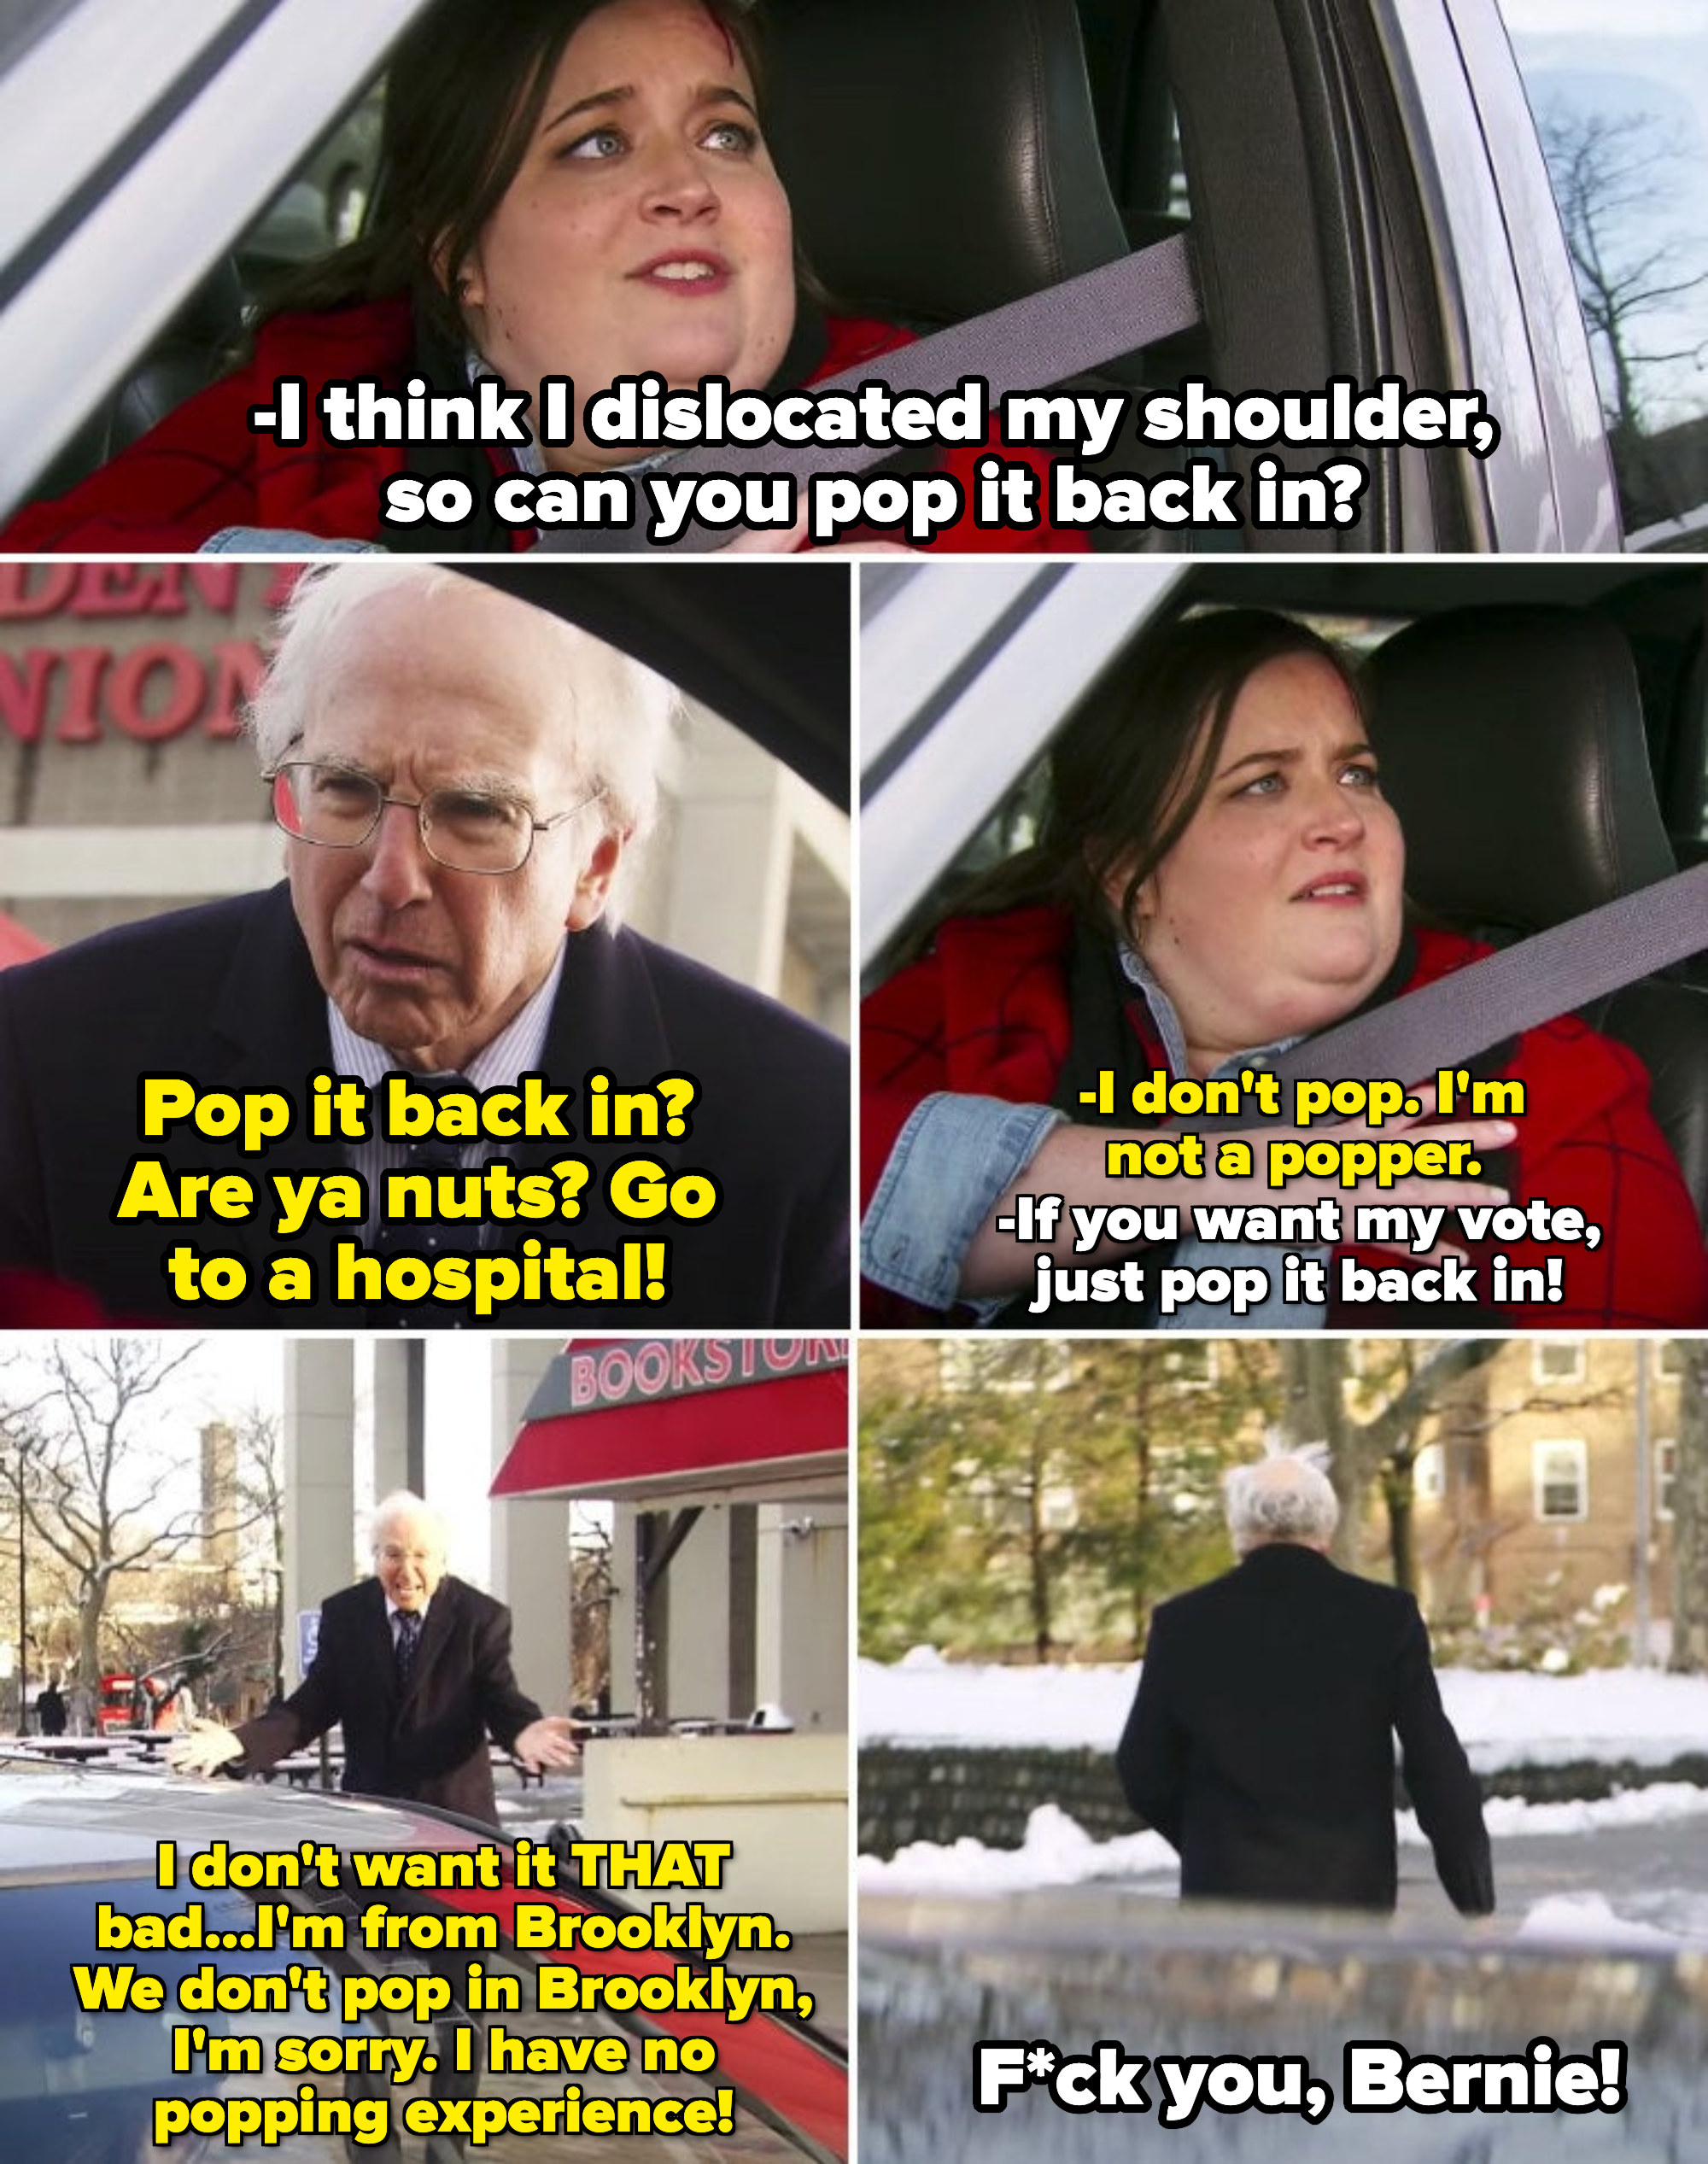 A citizen in a car crash asking Bernie Sanders to pop her shoulder back in, and he nervously runs away and refuses to help her